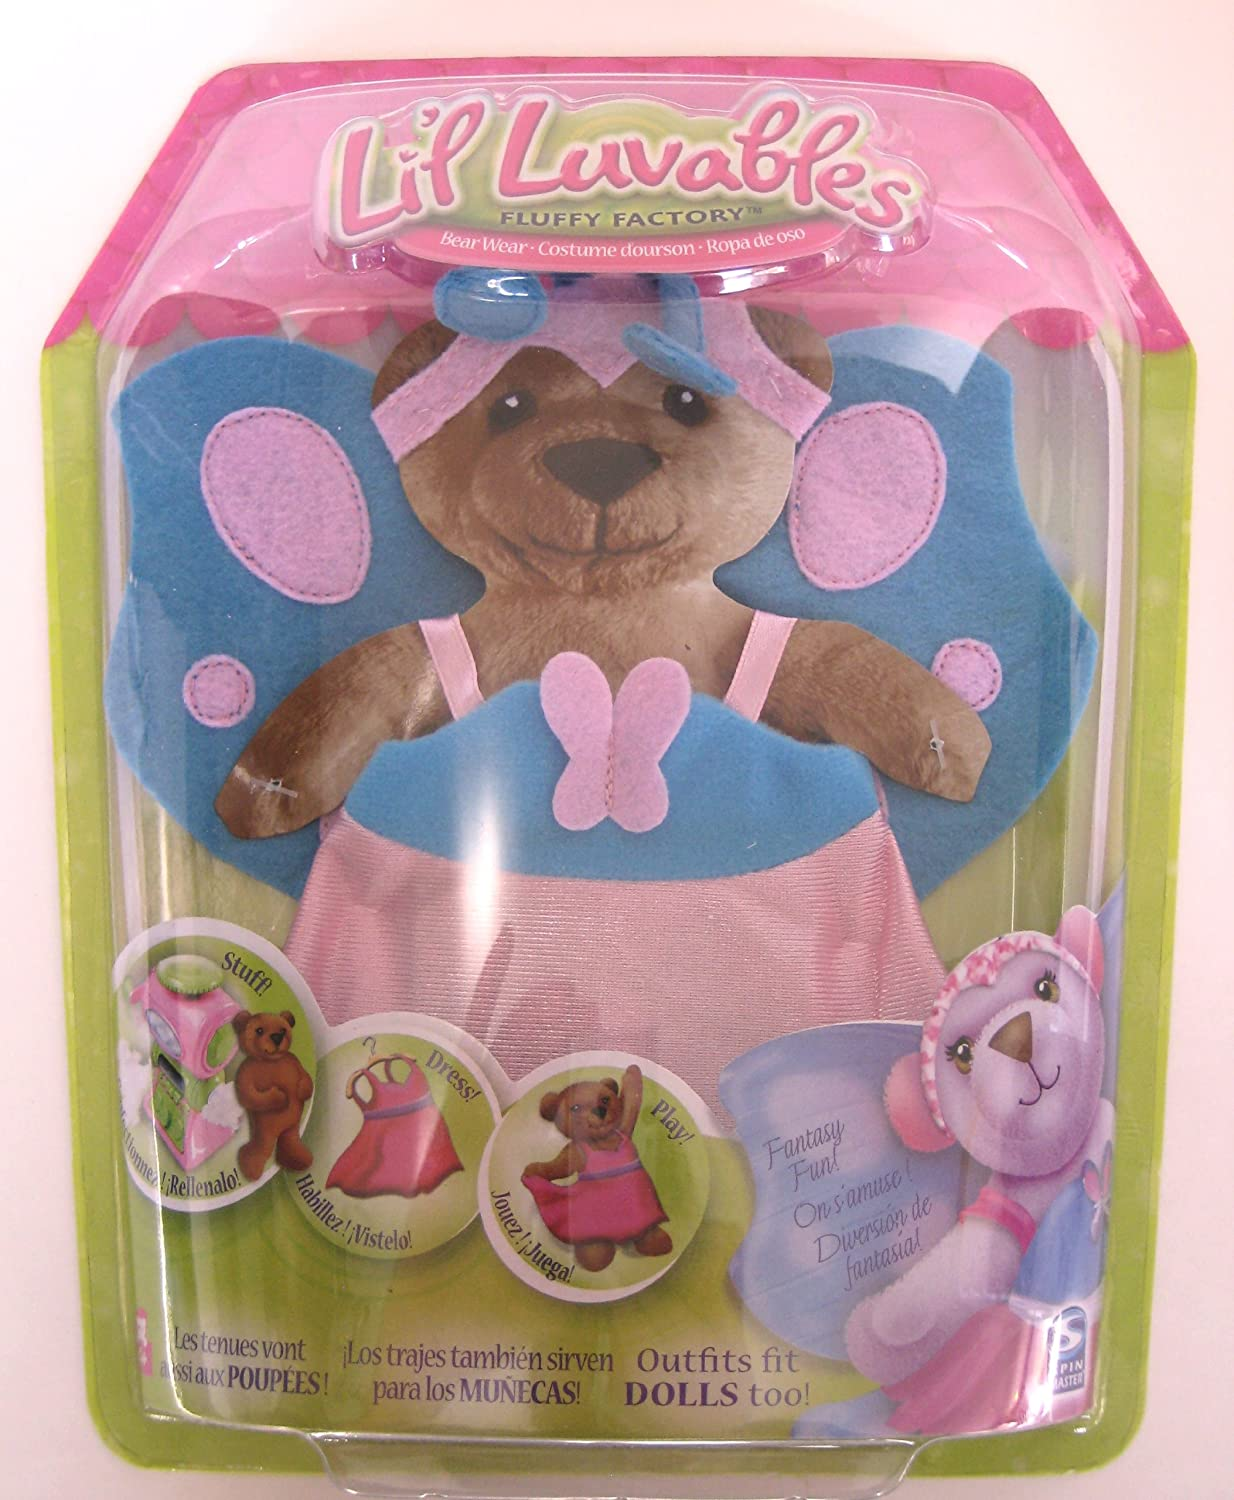 Amazon.com: Lil Luvables Fluffy Factory Bear Wear - Fantasy ...